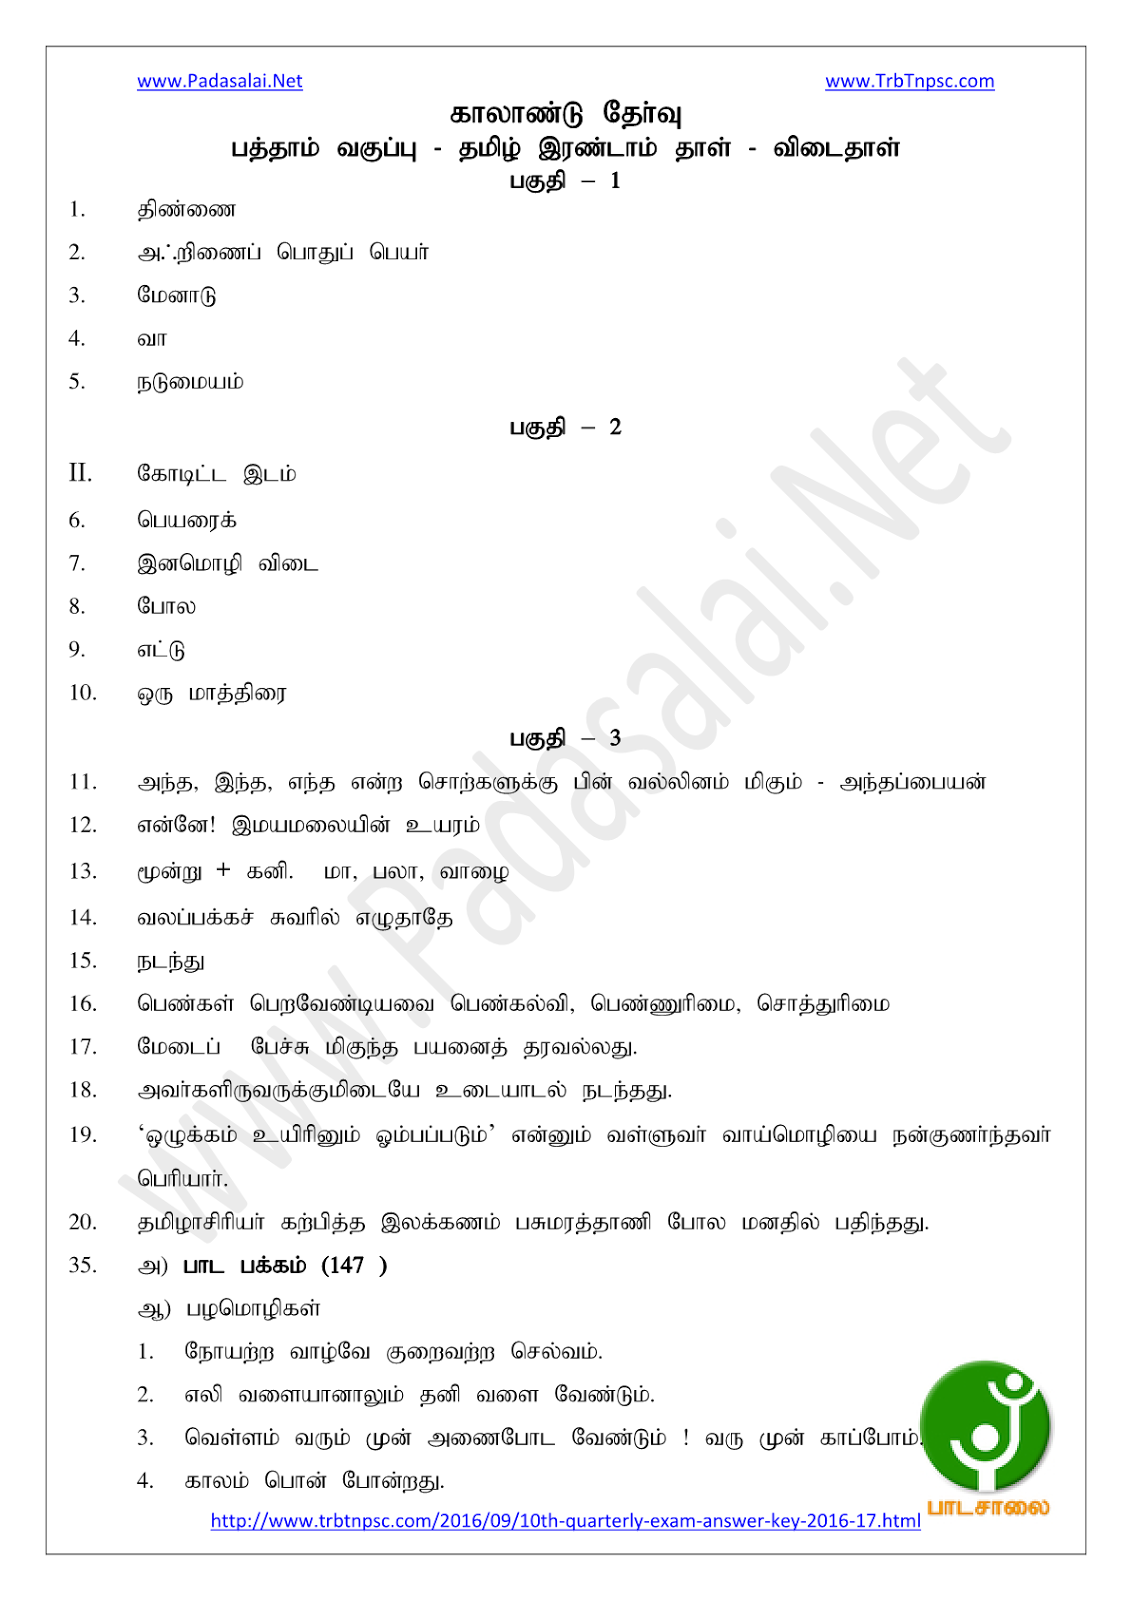 SSLC Quarterly Exam Key Answer 2016-17 for Tamil Paper 2 ~ Padasalai